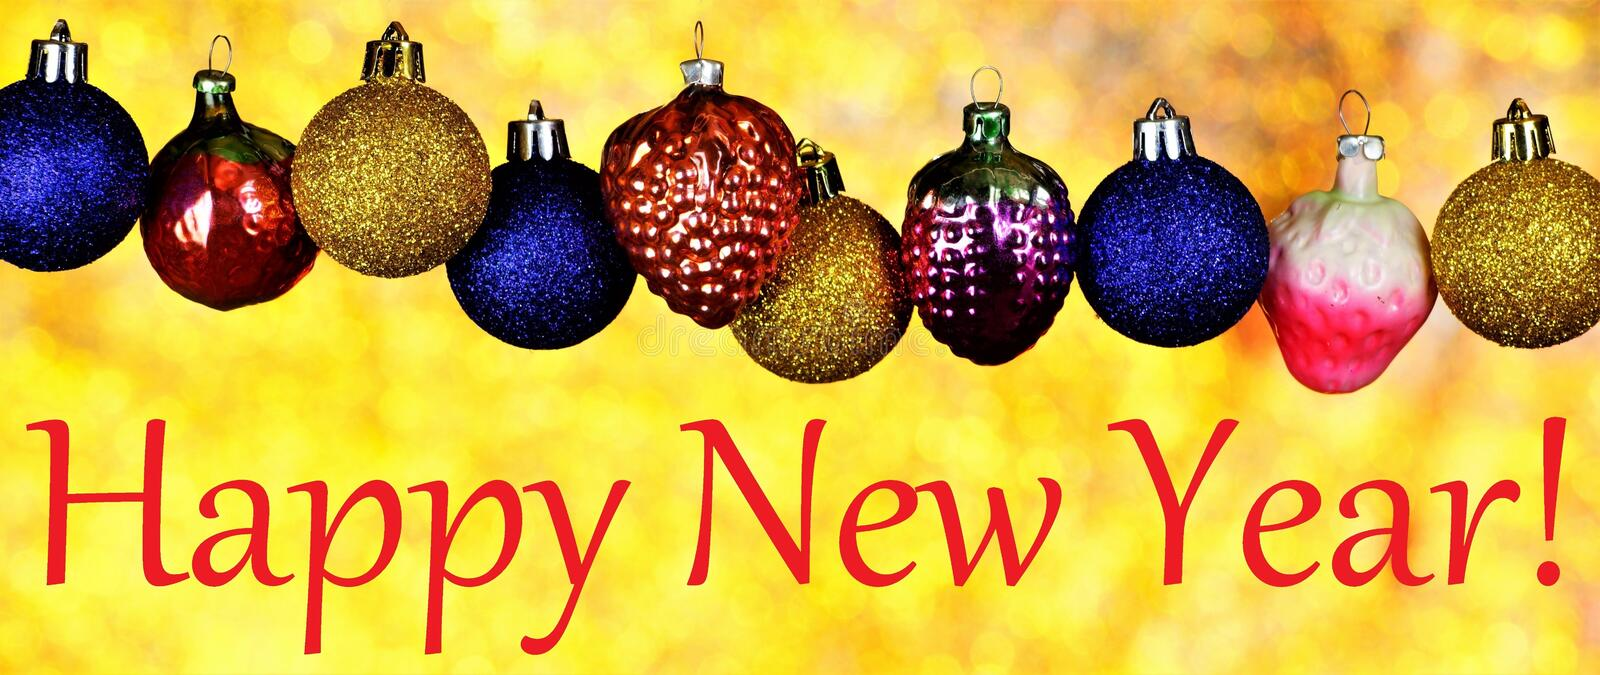 Happy New year, banner of toys and bright bokeh lights holiday background. Decoration for creative design of new year and stock photography